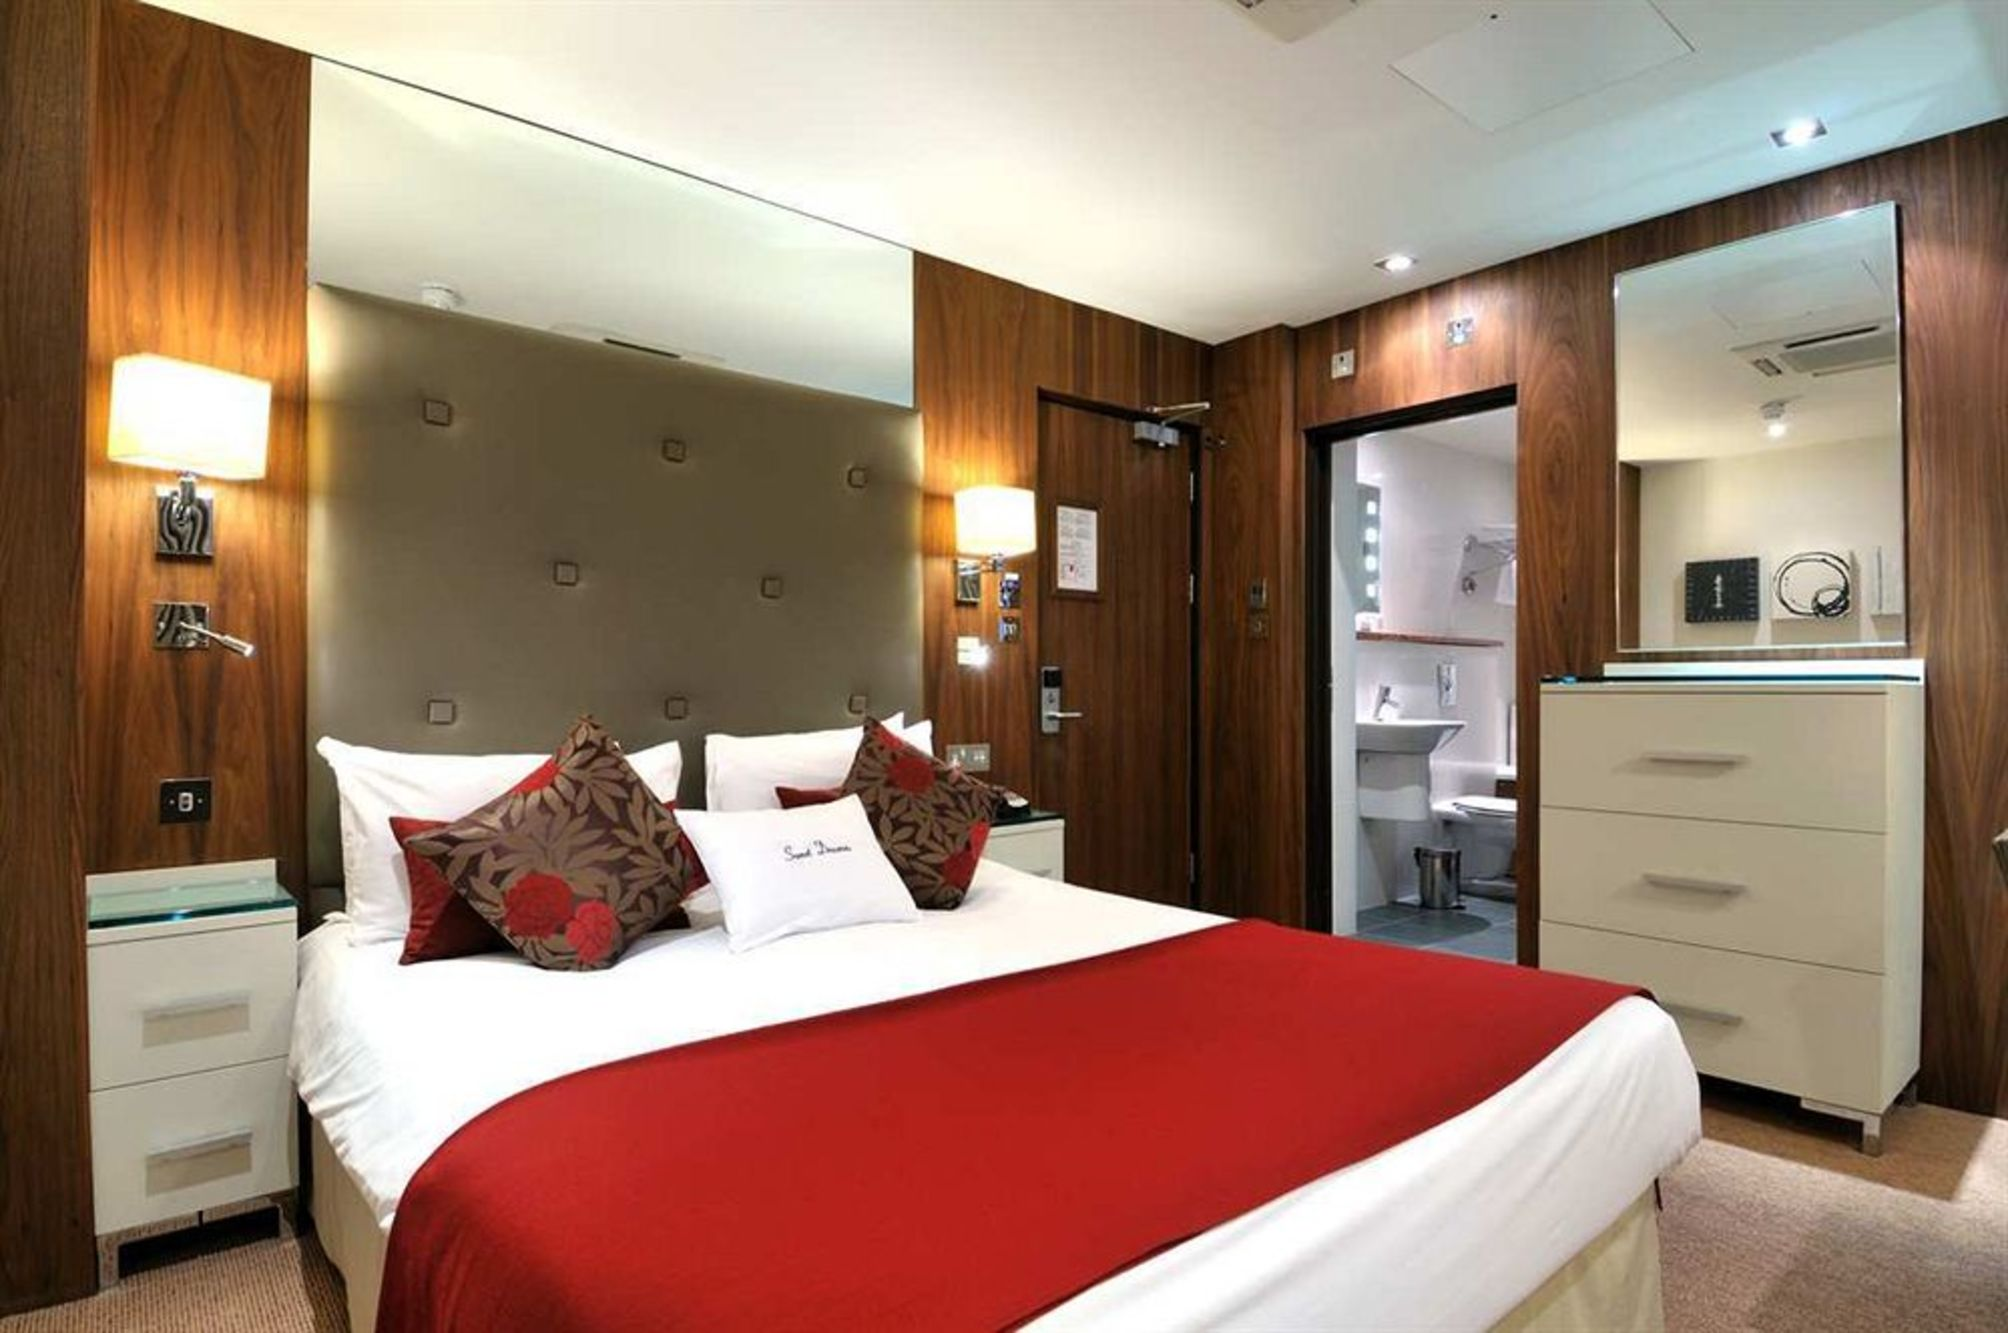 Hotel doubletree by hilton london west end em londres for Hotel w londres